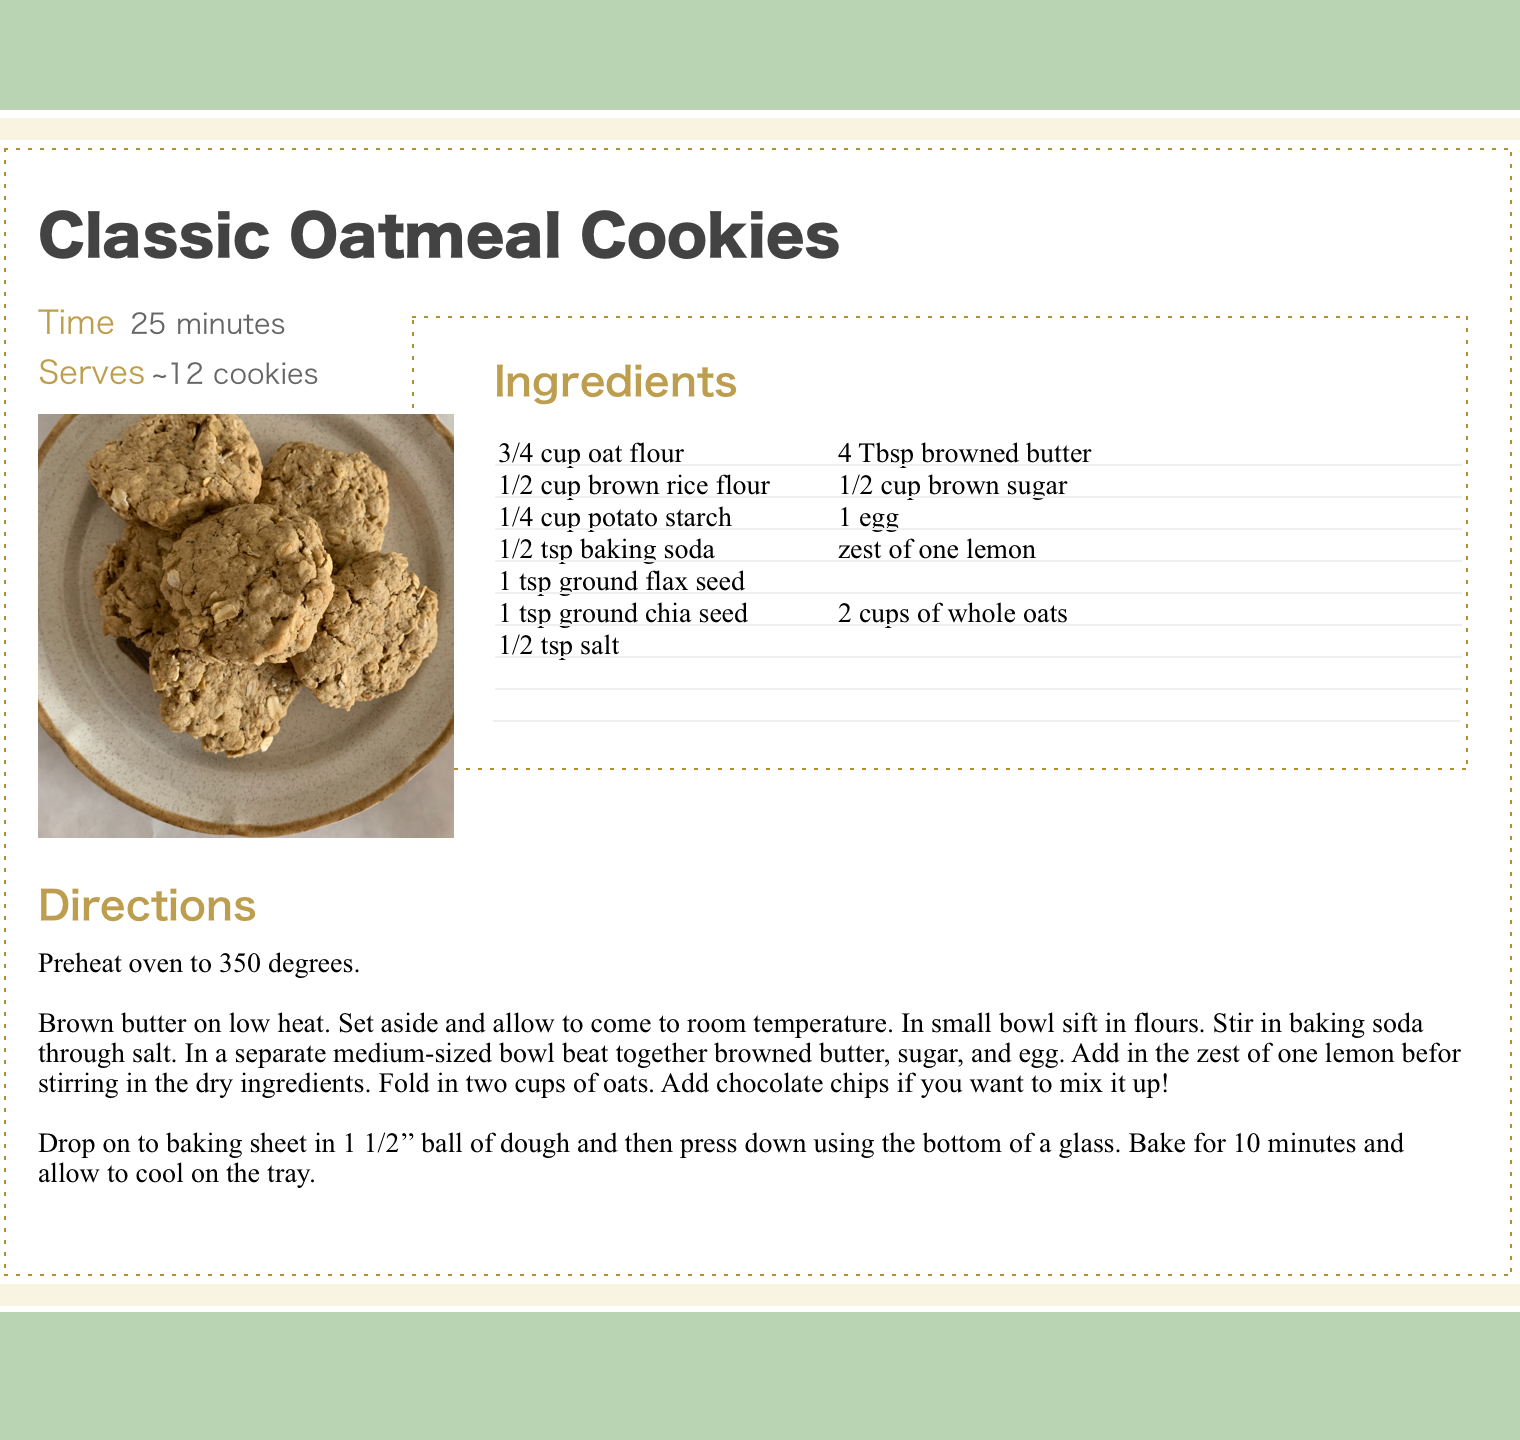 OatmealCookies.png